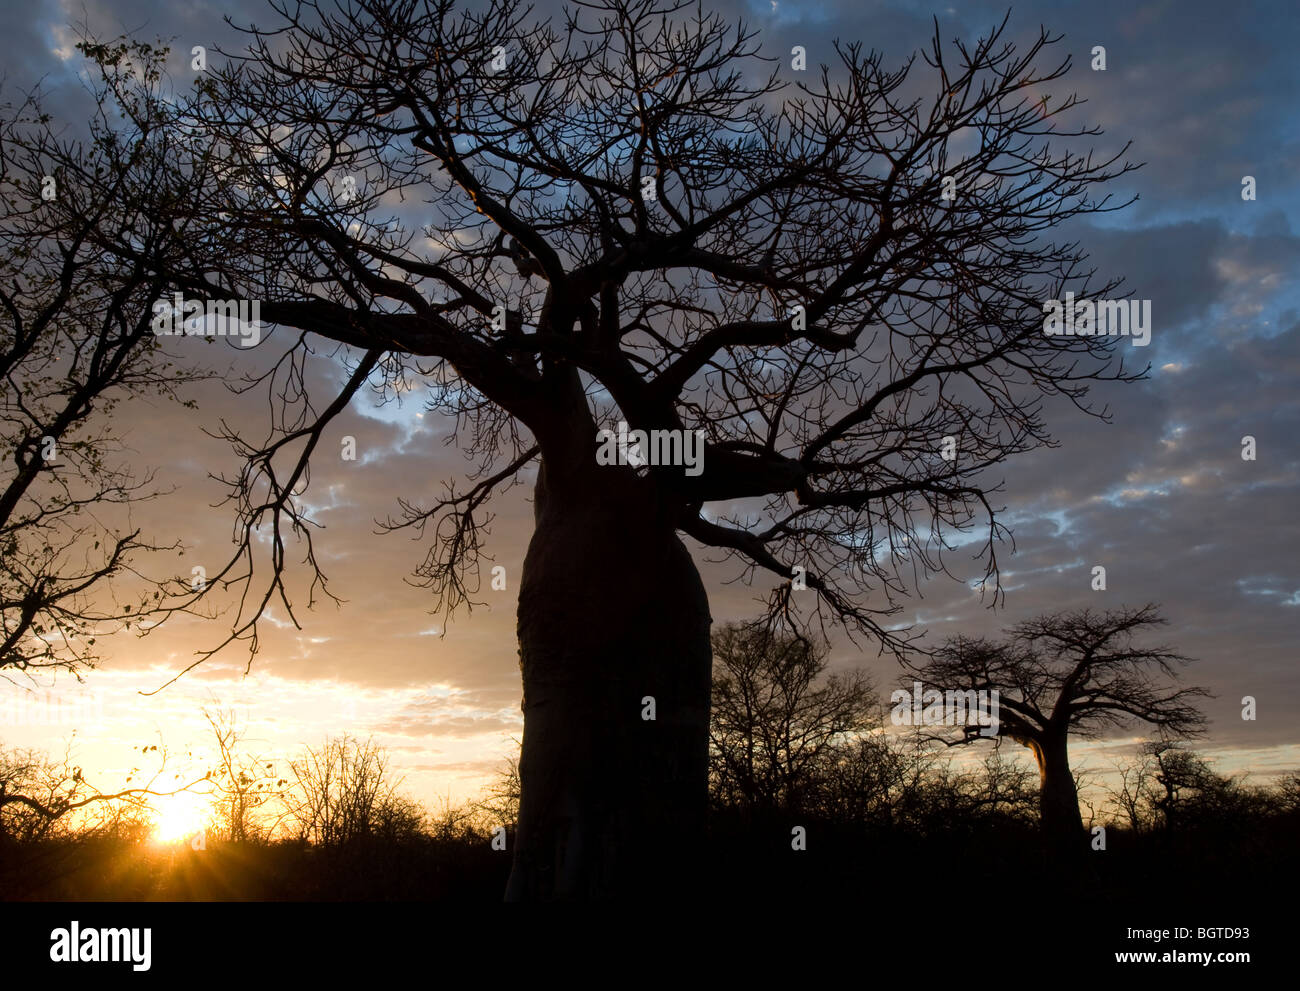 Sunrising behind ancient Boabab tree, Messina Limpopo - Stock Image